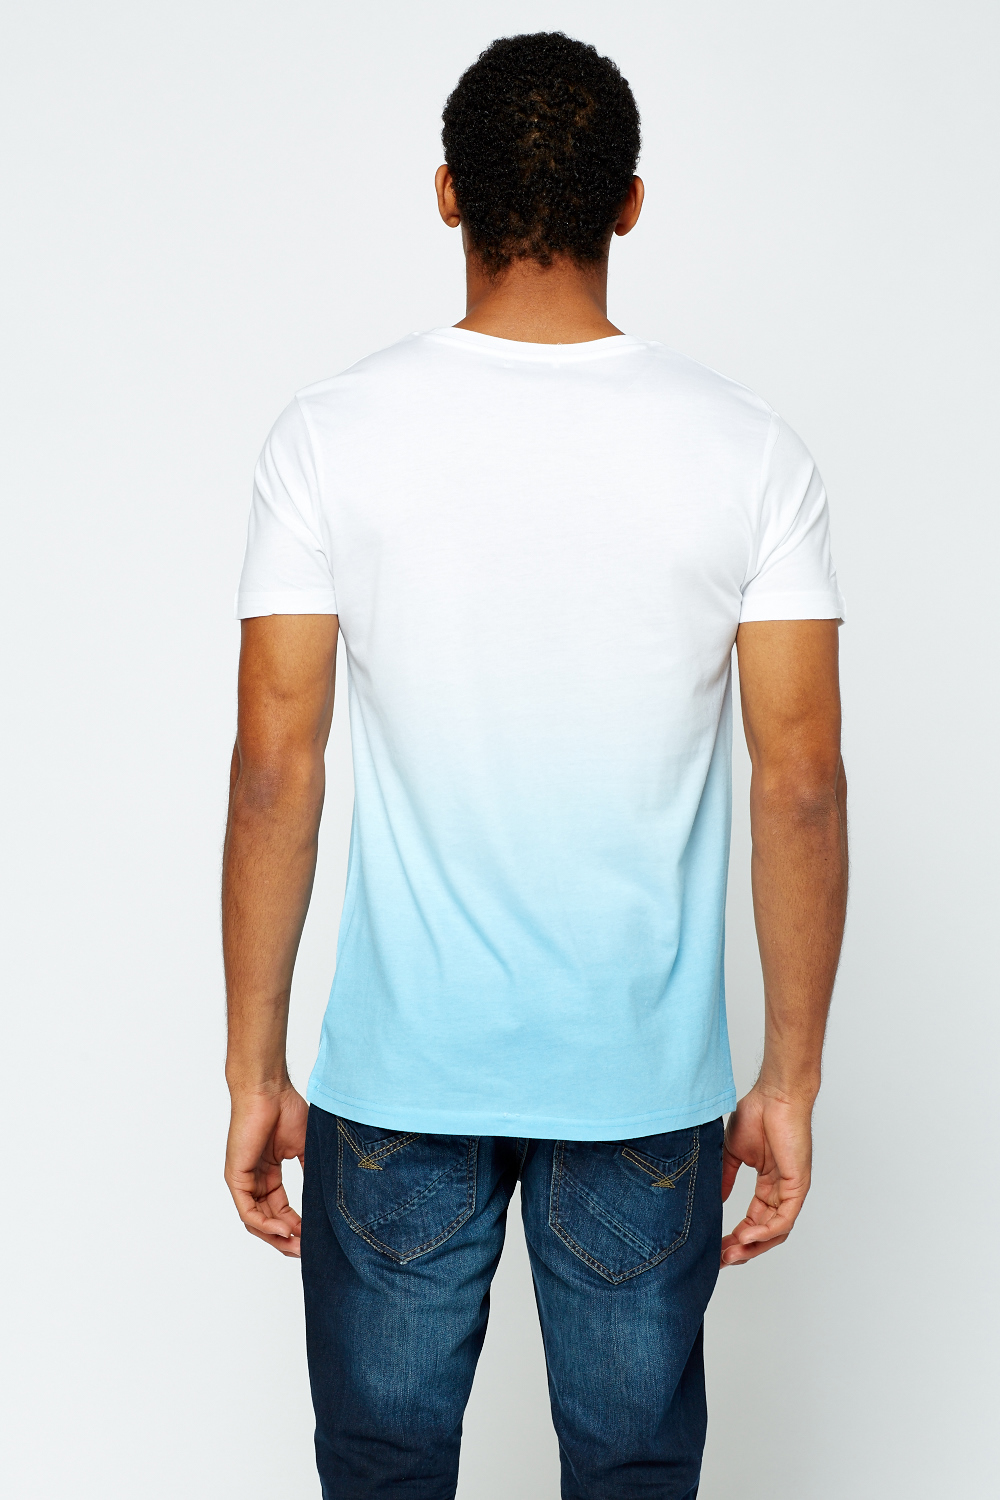 Logo Printed Front T Shirt White Blue Just 5